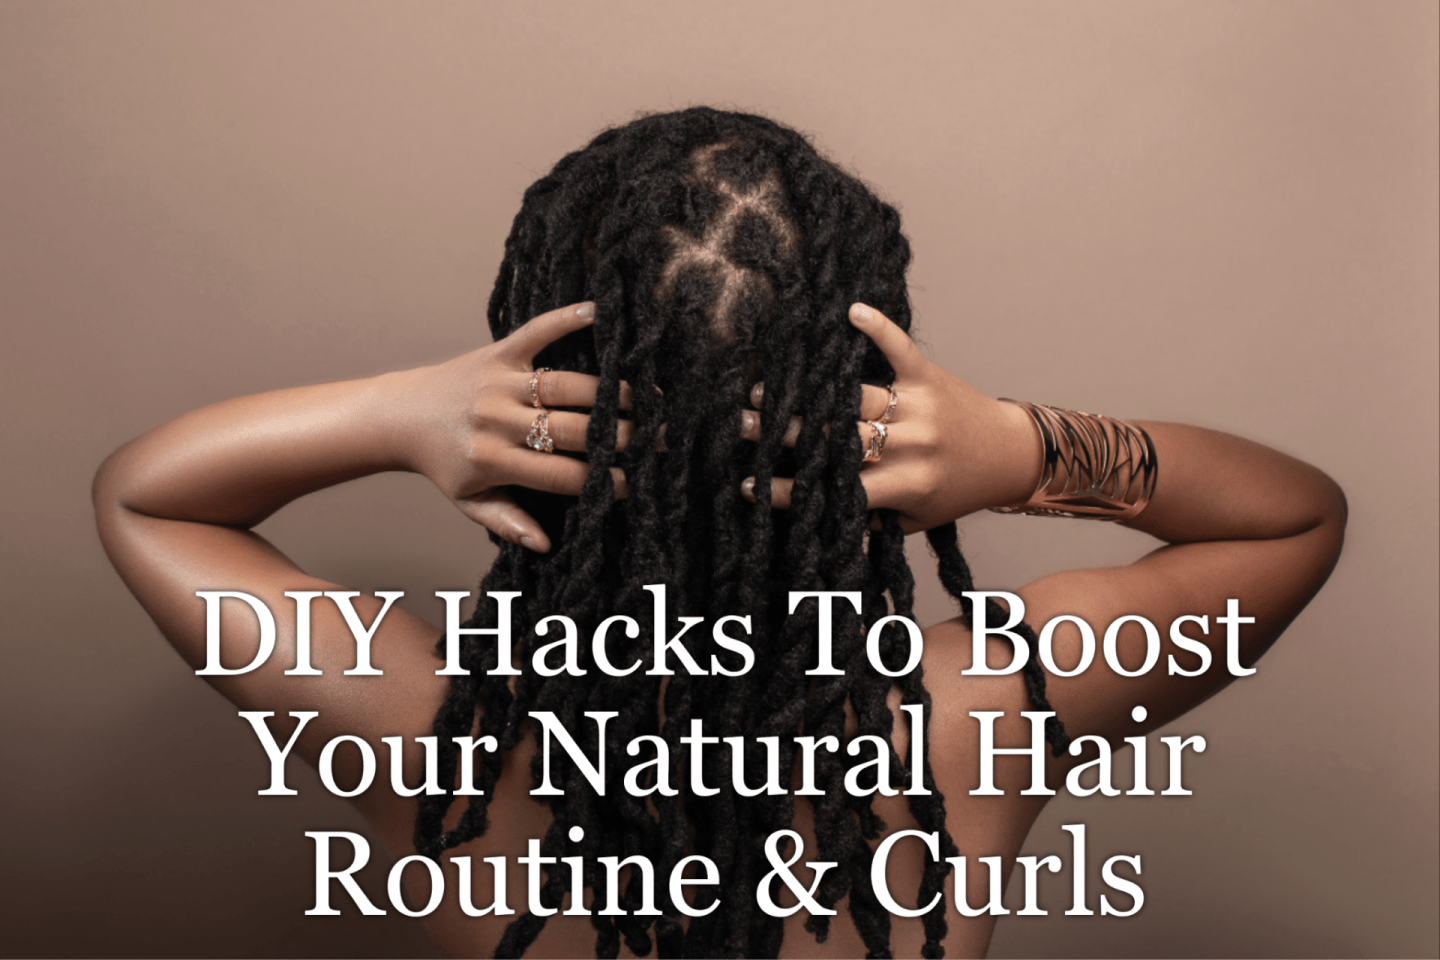 DIY hacks can be used on your natural hair and they don't have to have a ton of ingredients. Just check out our faves to make your hair great.